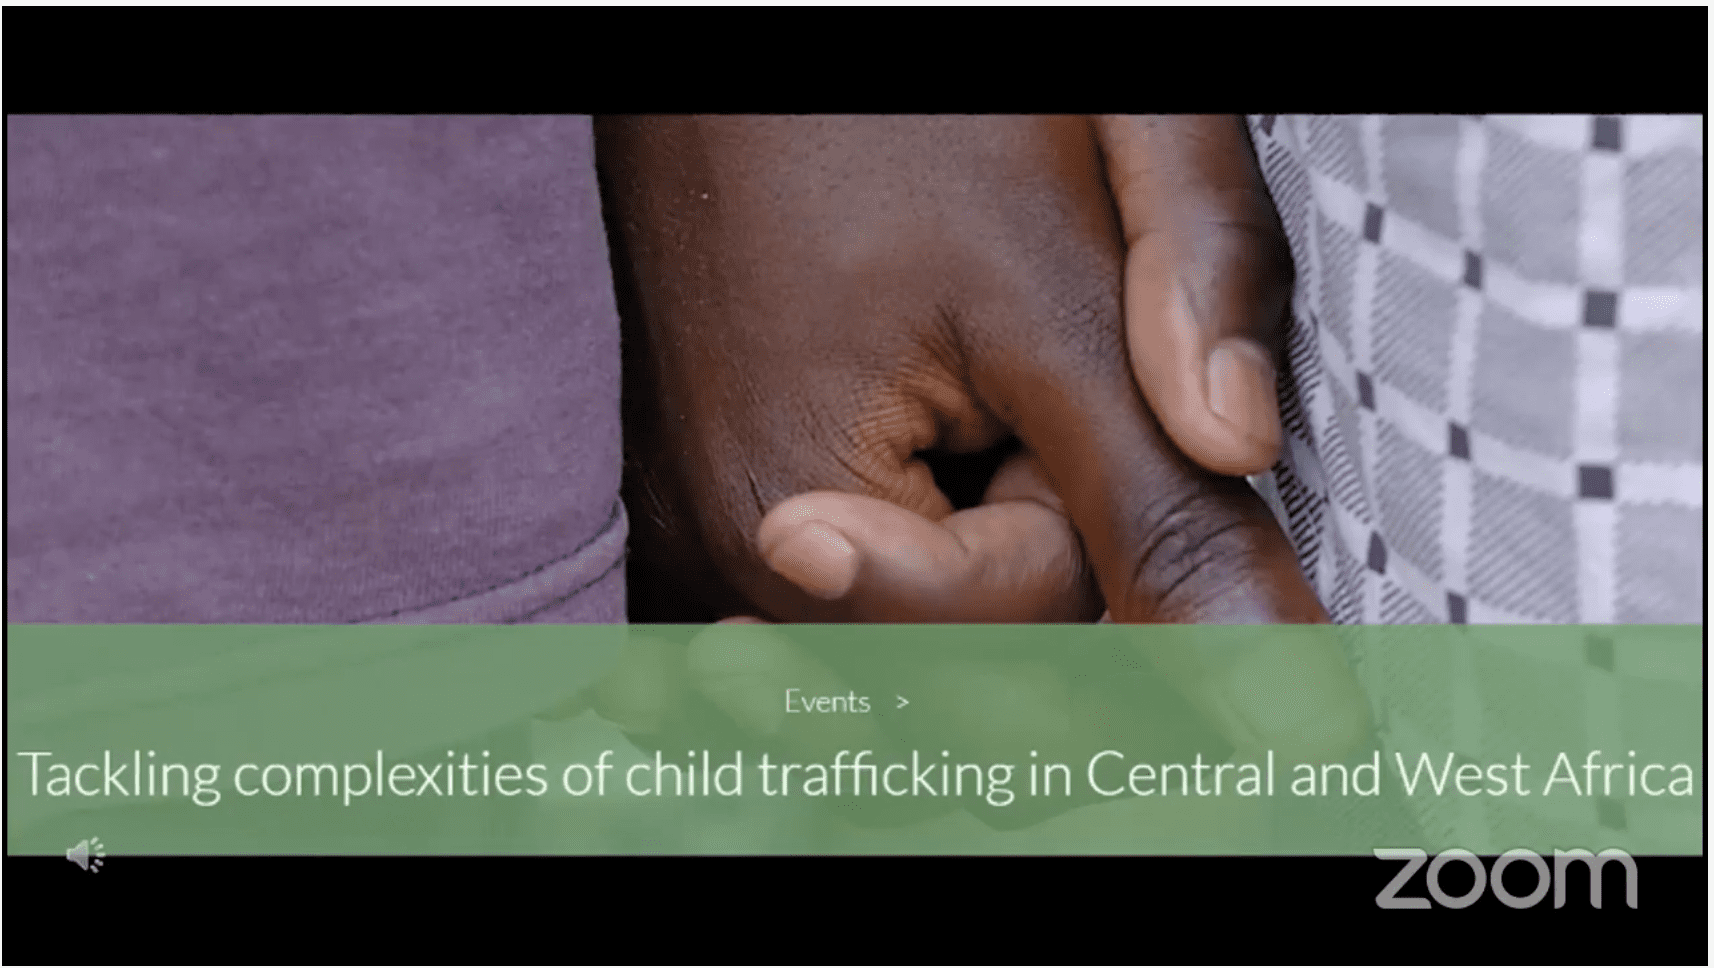 Tackling complexities of child trafficking in Central and West Africa